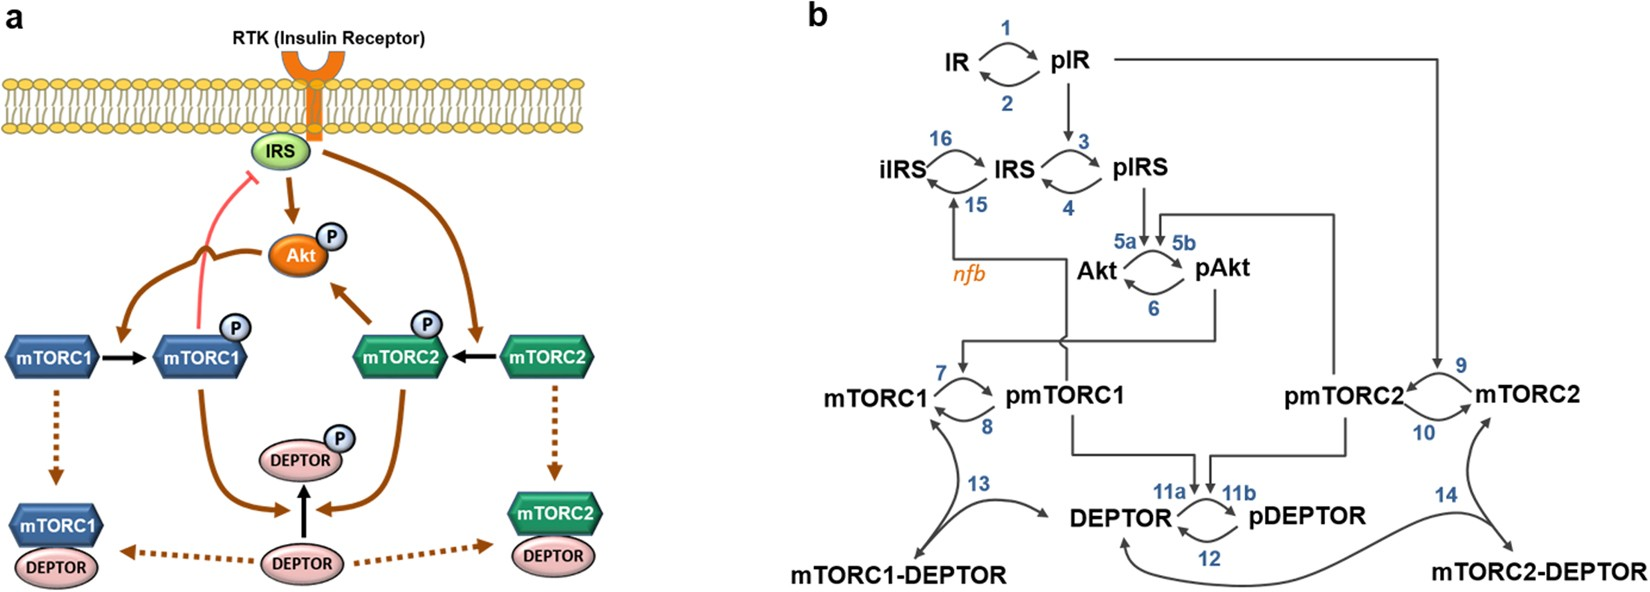 Dynamic Modelling Of The Mtor Signalling Network Reveals Complex Simplified And Gate Shown Above Has Two Inputs Switch A Emergent Behaviours Conferred By Deptor Scientific Reports